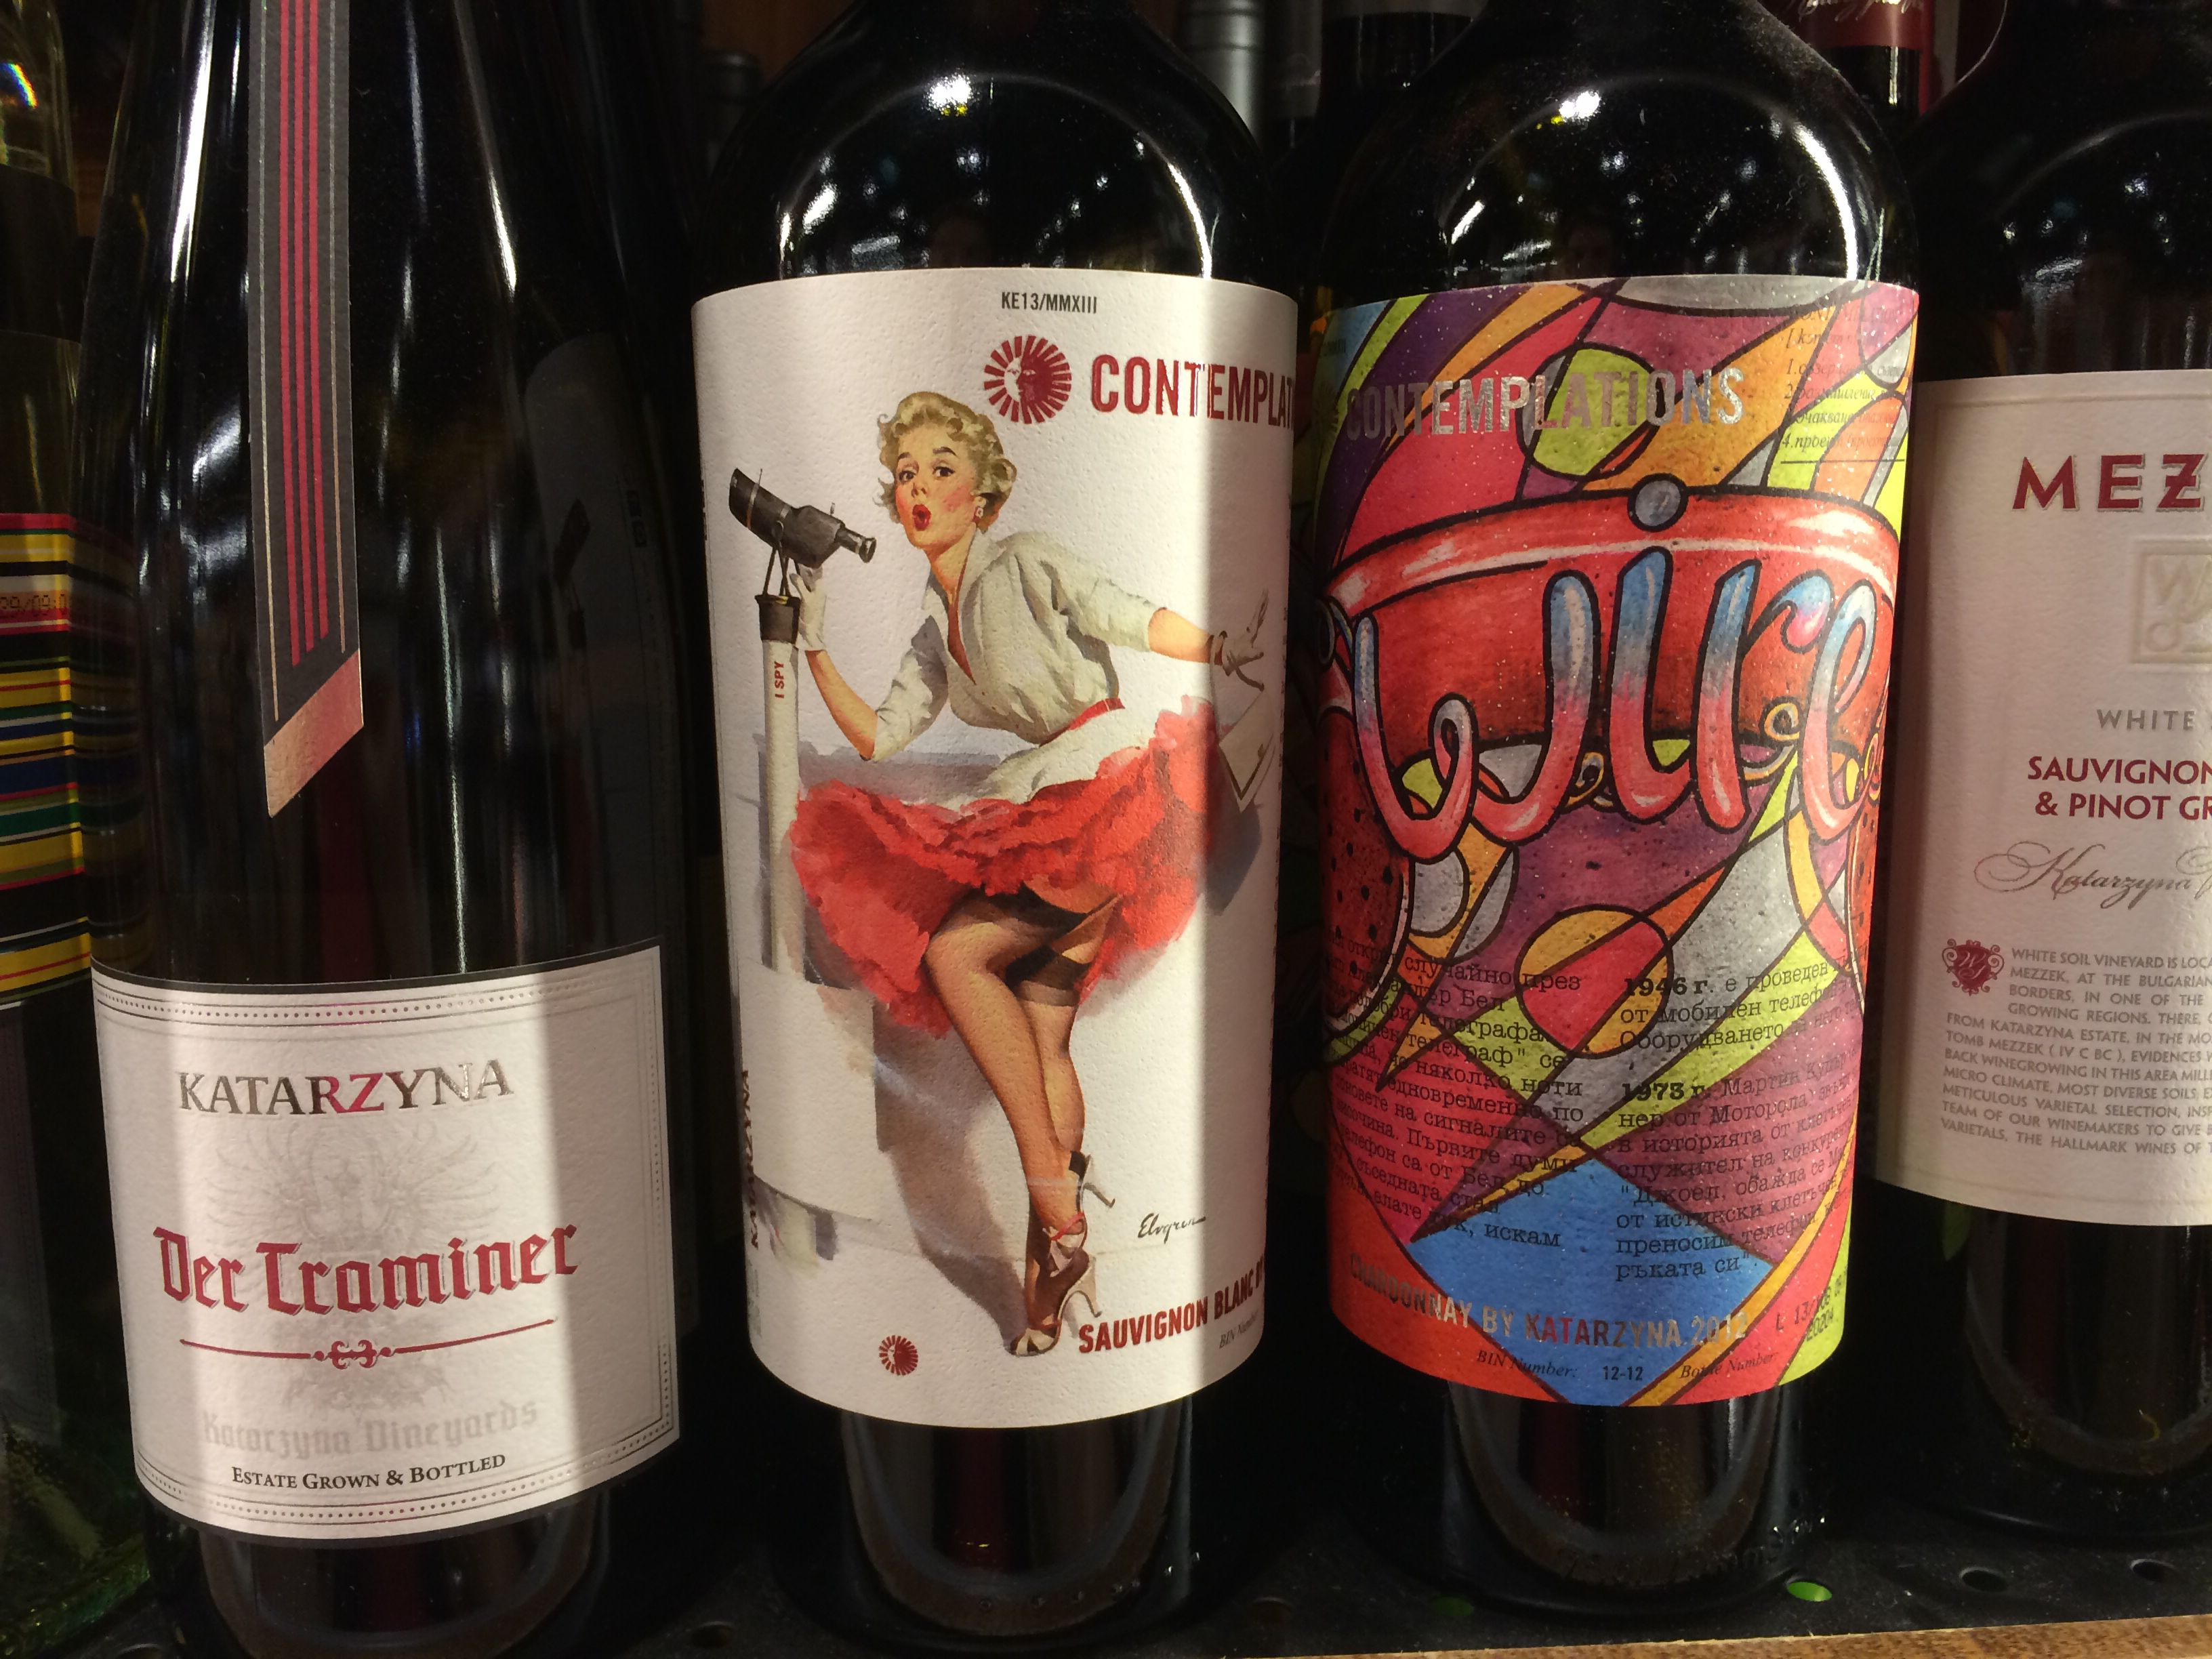 You Ve Got To Love Those Wine Labels Wine Bottle Wine Pinot